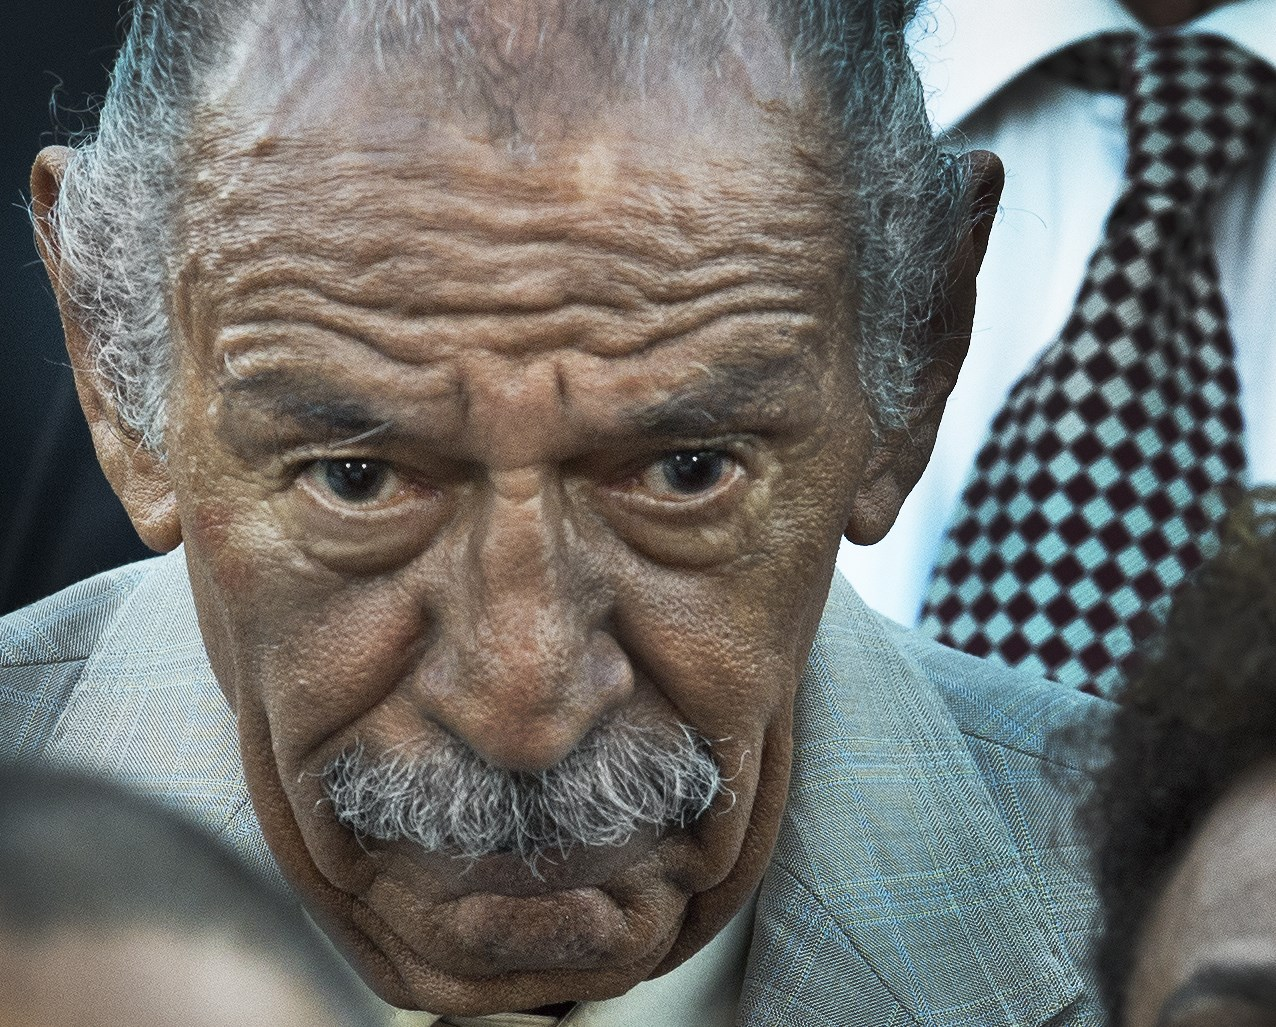 US Rep John Conyers (D-MI) listens as US House of Representatives Minority Leader Nancy Pelosi speaks during a press conference about the Iran nuclear deal on Capitol Hill in Washington on September 8, 2015. PAUL J. RICHARDS/AFP/Getty Images